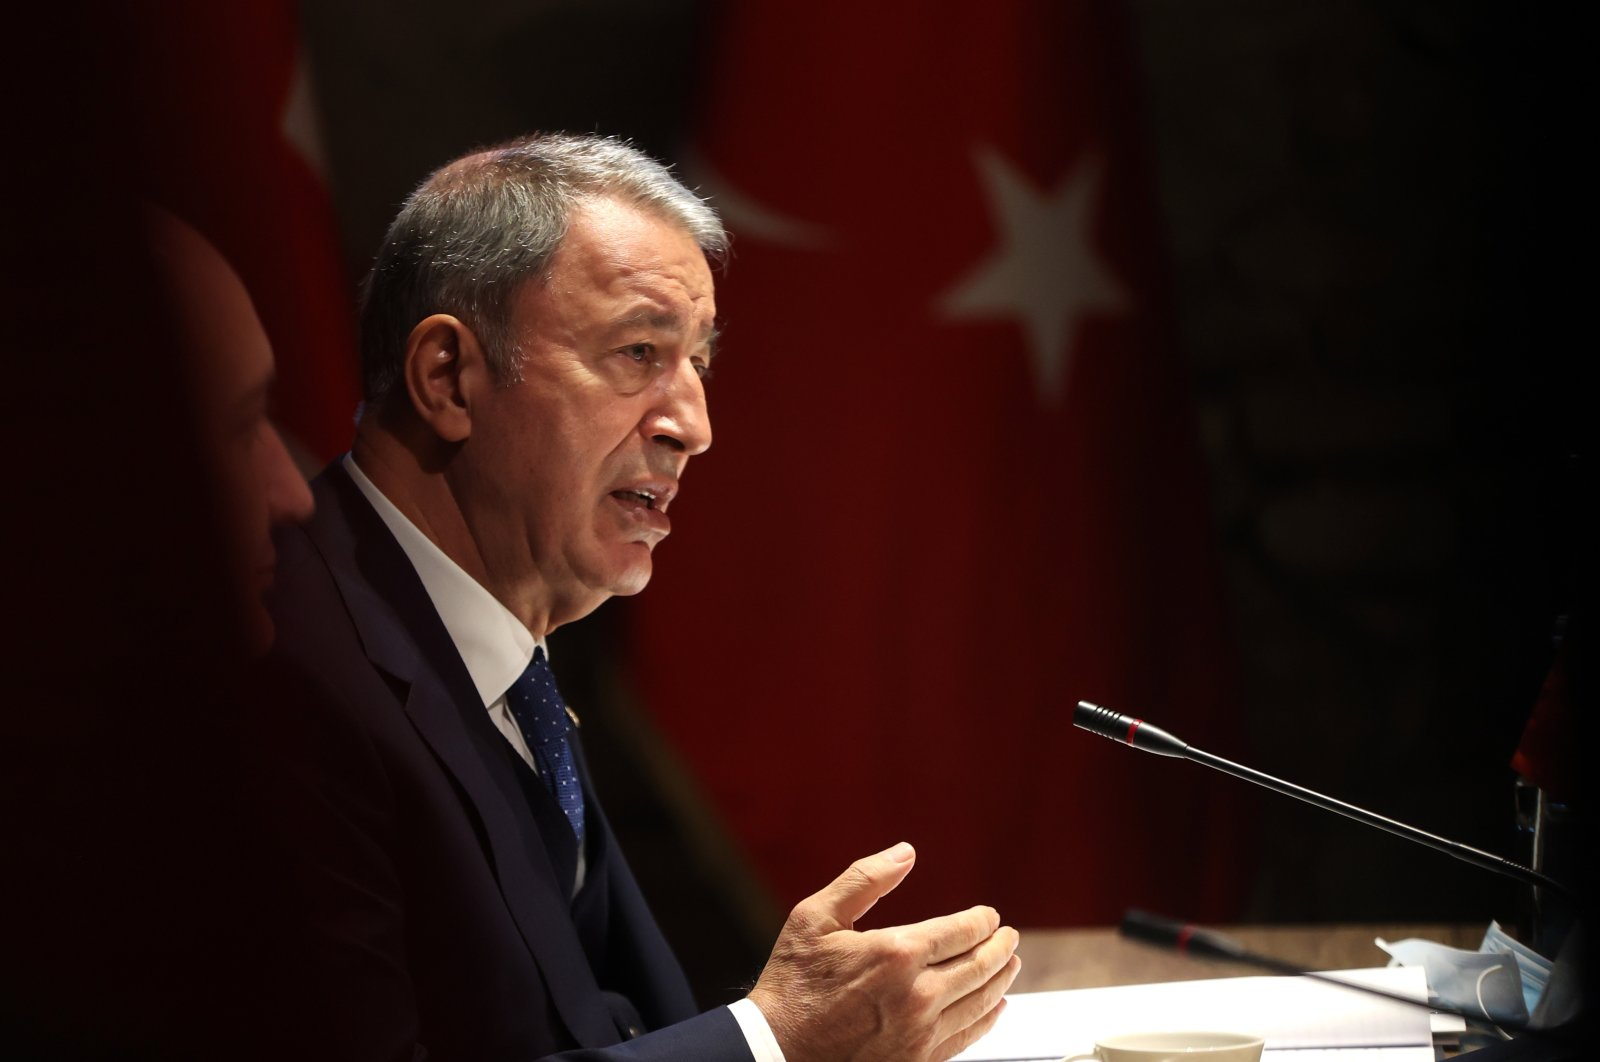 Defense Minister Hulusi Akar speaks to reporters following a meeting with his Georgian and Azerbaijani counterparts in Tbilisi, Georgia, Oct. 5, 2021. (AA Photo)